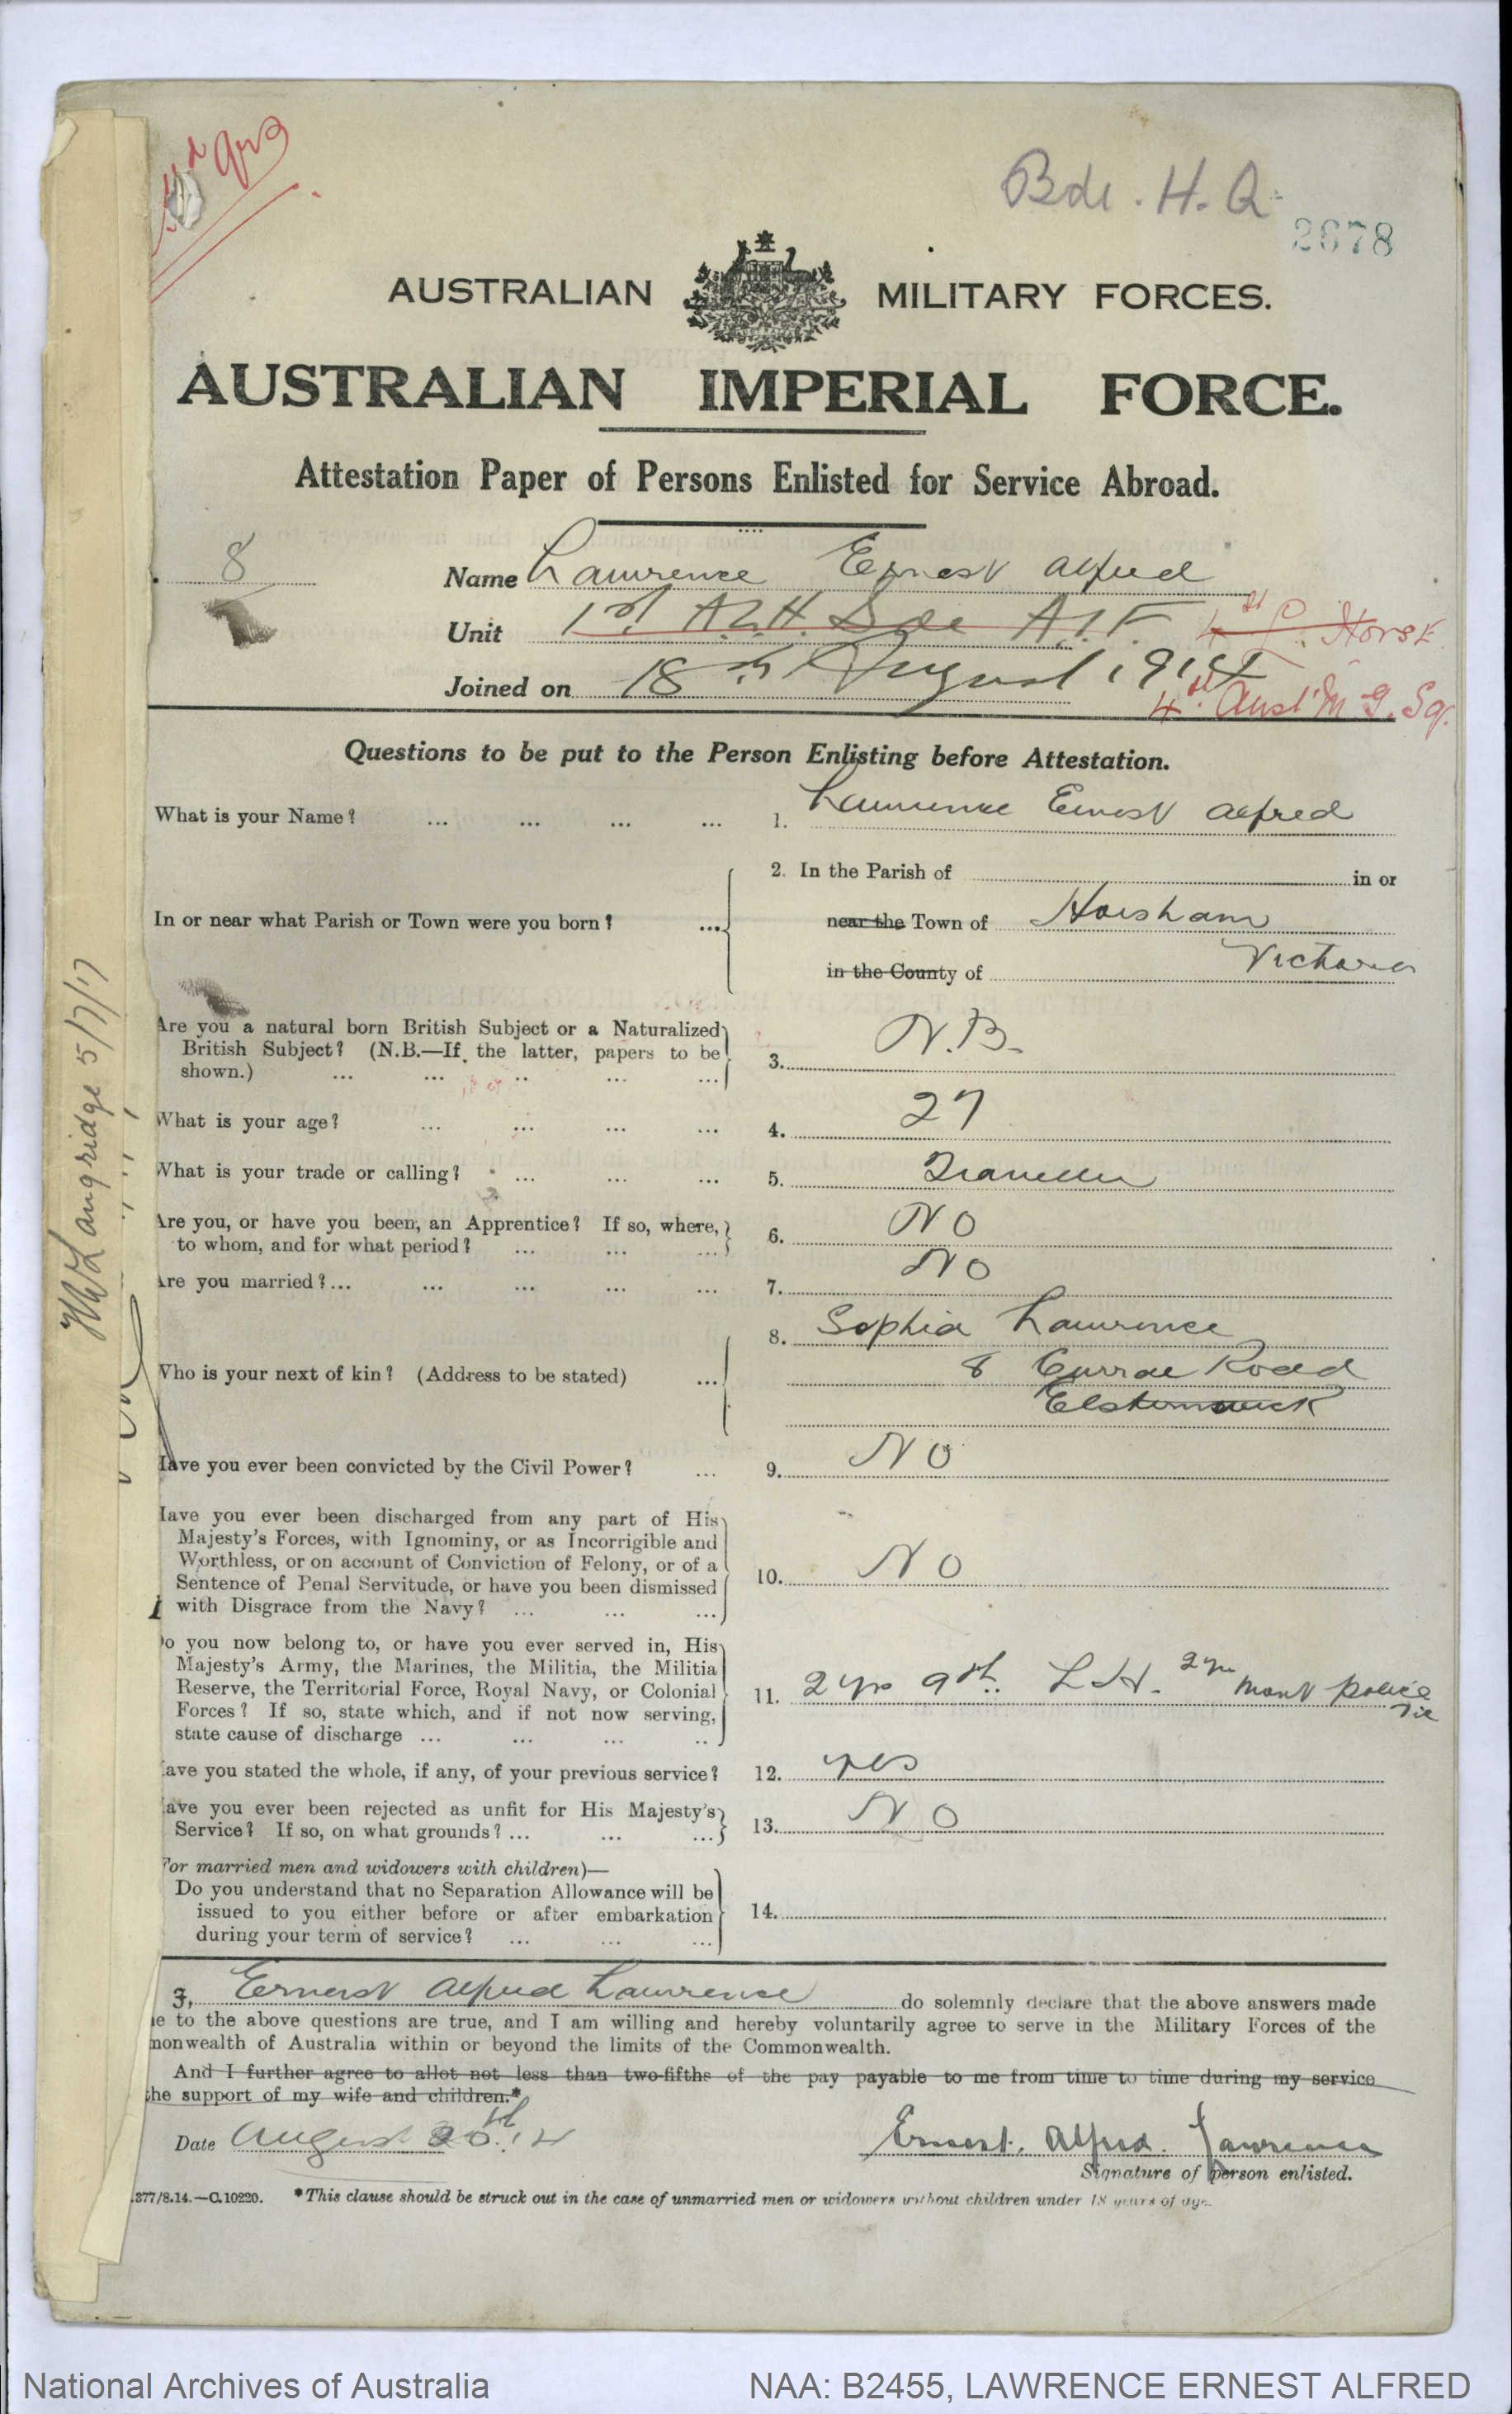 LAWRENCE Ernest Alfred : Service Number - 8 : Place of Birth - Horsham VIC : Place of Enlistment - Broadmeadows VIC : Next of Kin - (N/A) LAWRENCE Sophia